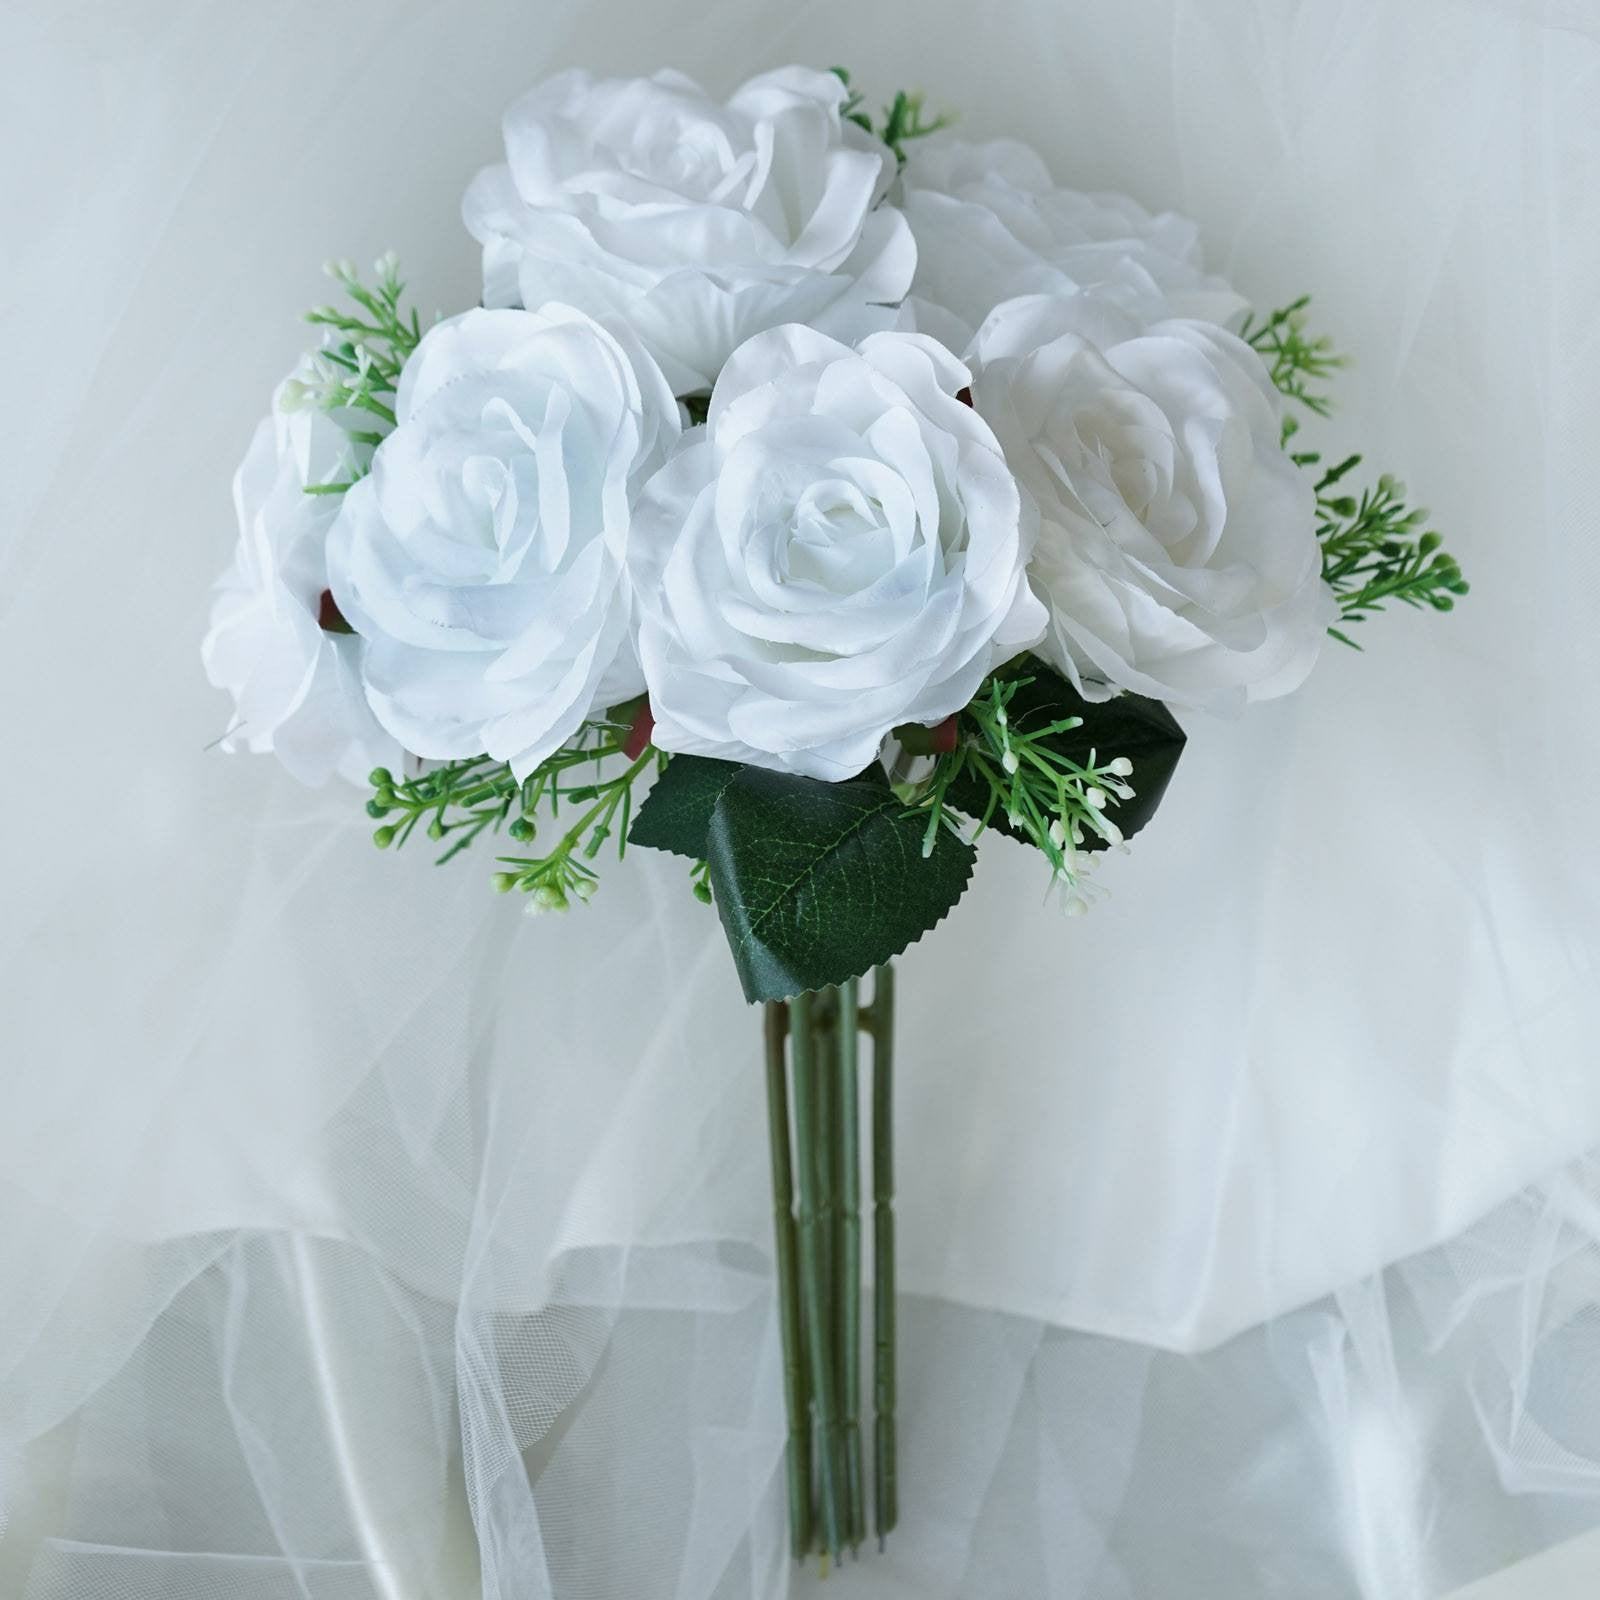 4 Bush 28 Pcs White Artificial Open Rose Flower Bridal Bouquet